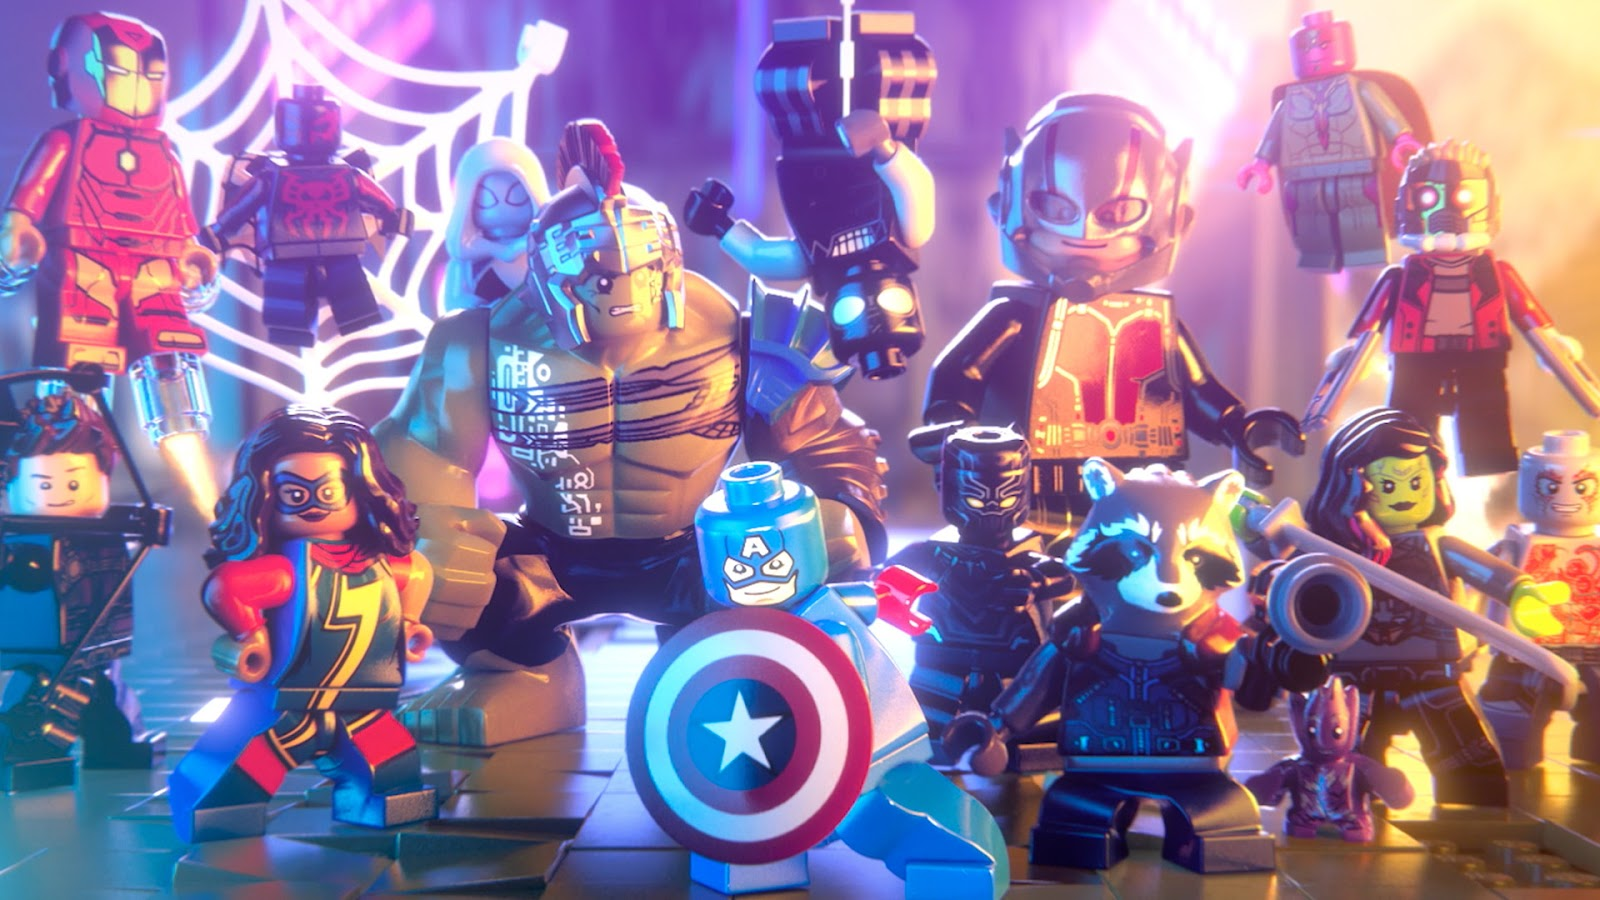 Latest Trailer Of LEGO Marvel Super Heroes 2 Reveals The Game Main Villain.